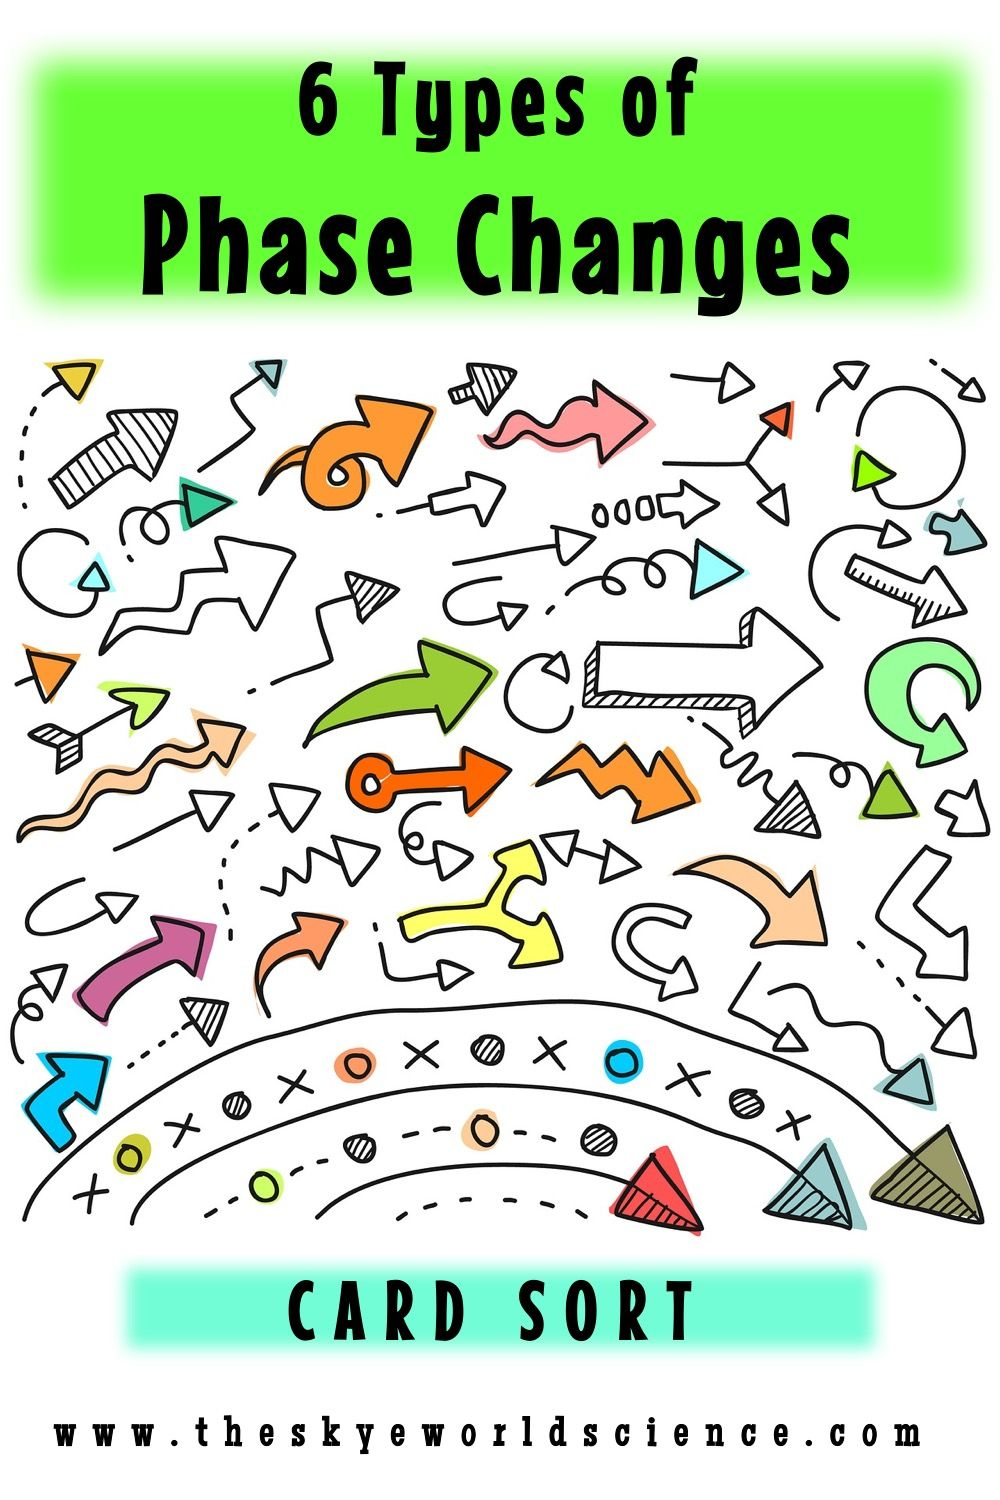 Phase Changes Card Sort Sorting Cards Sorting Activities Cooperative Learning